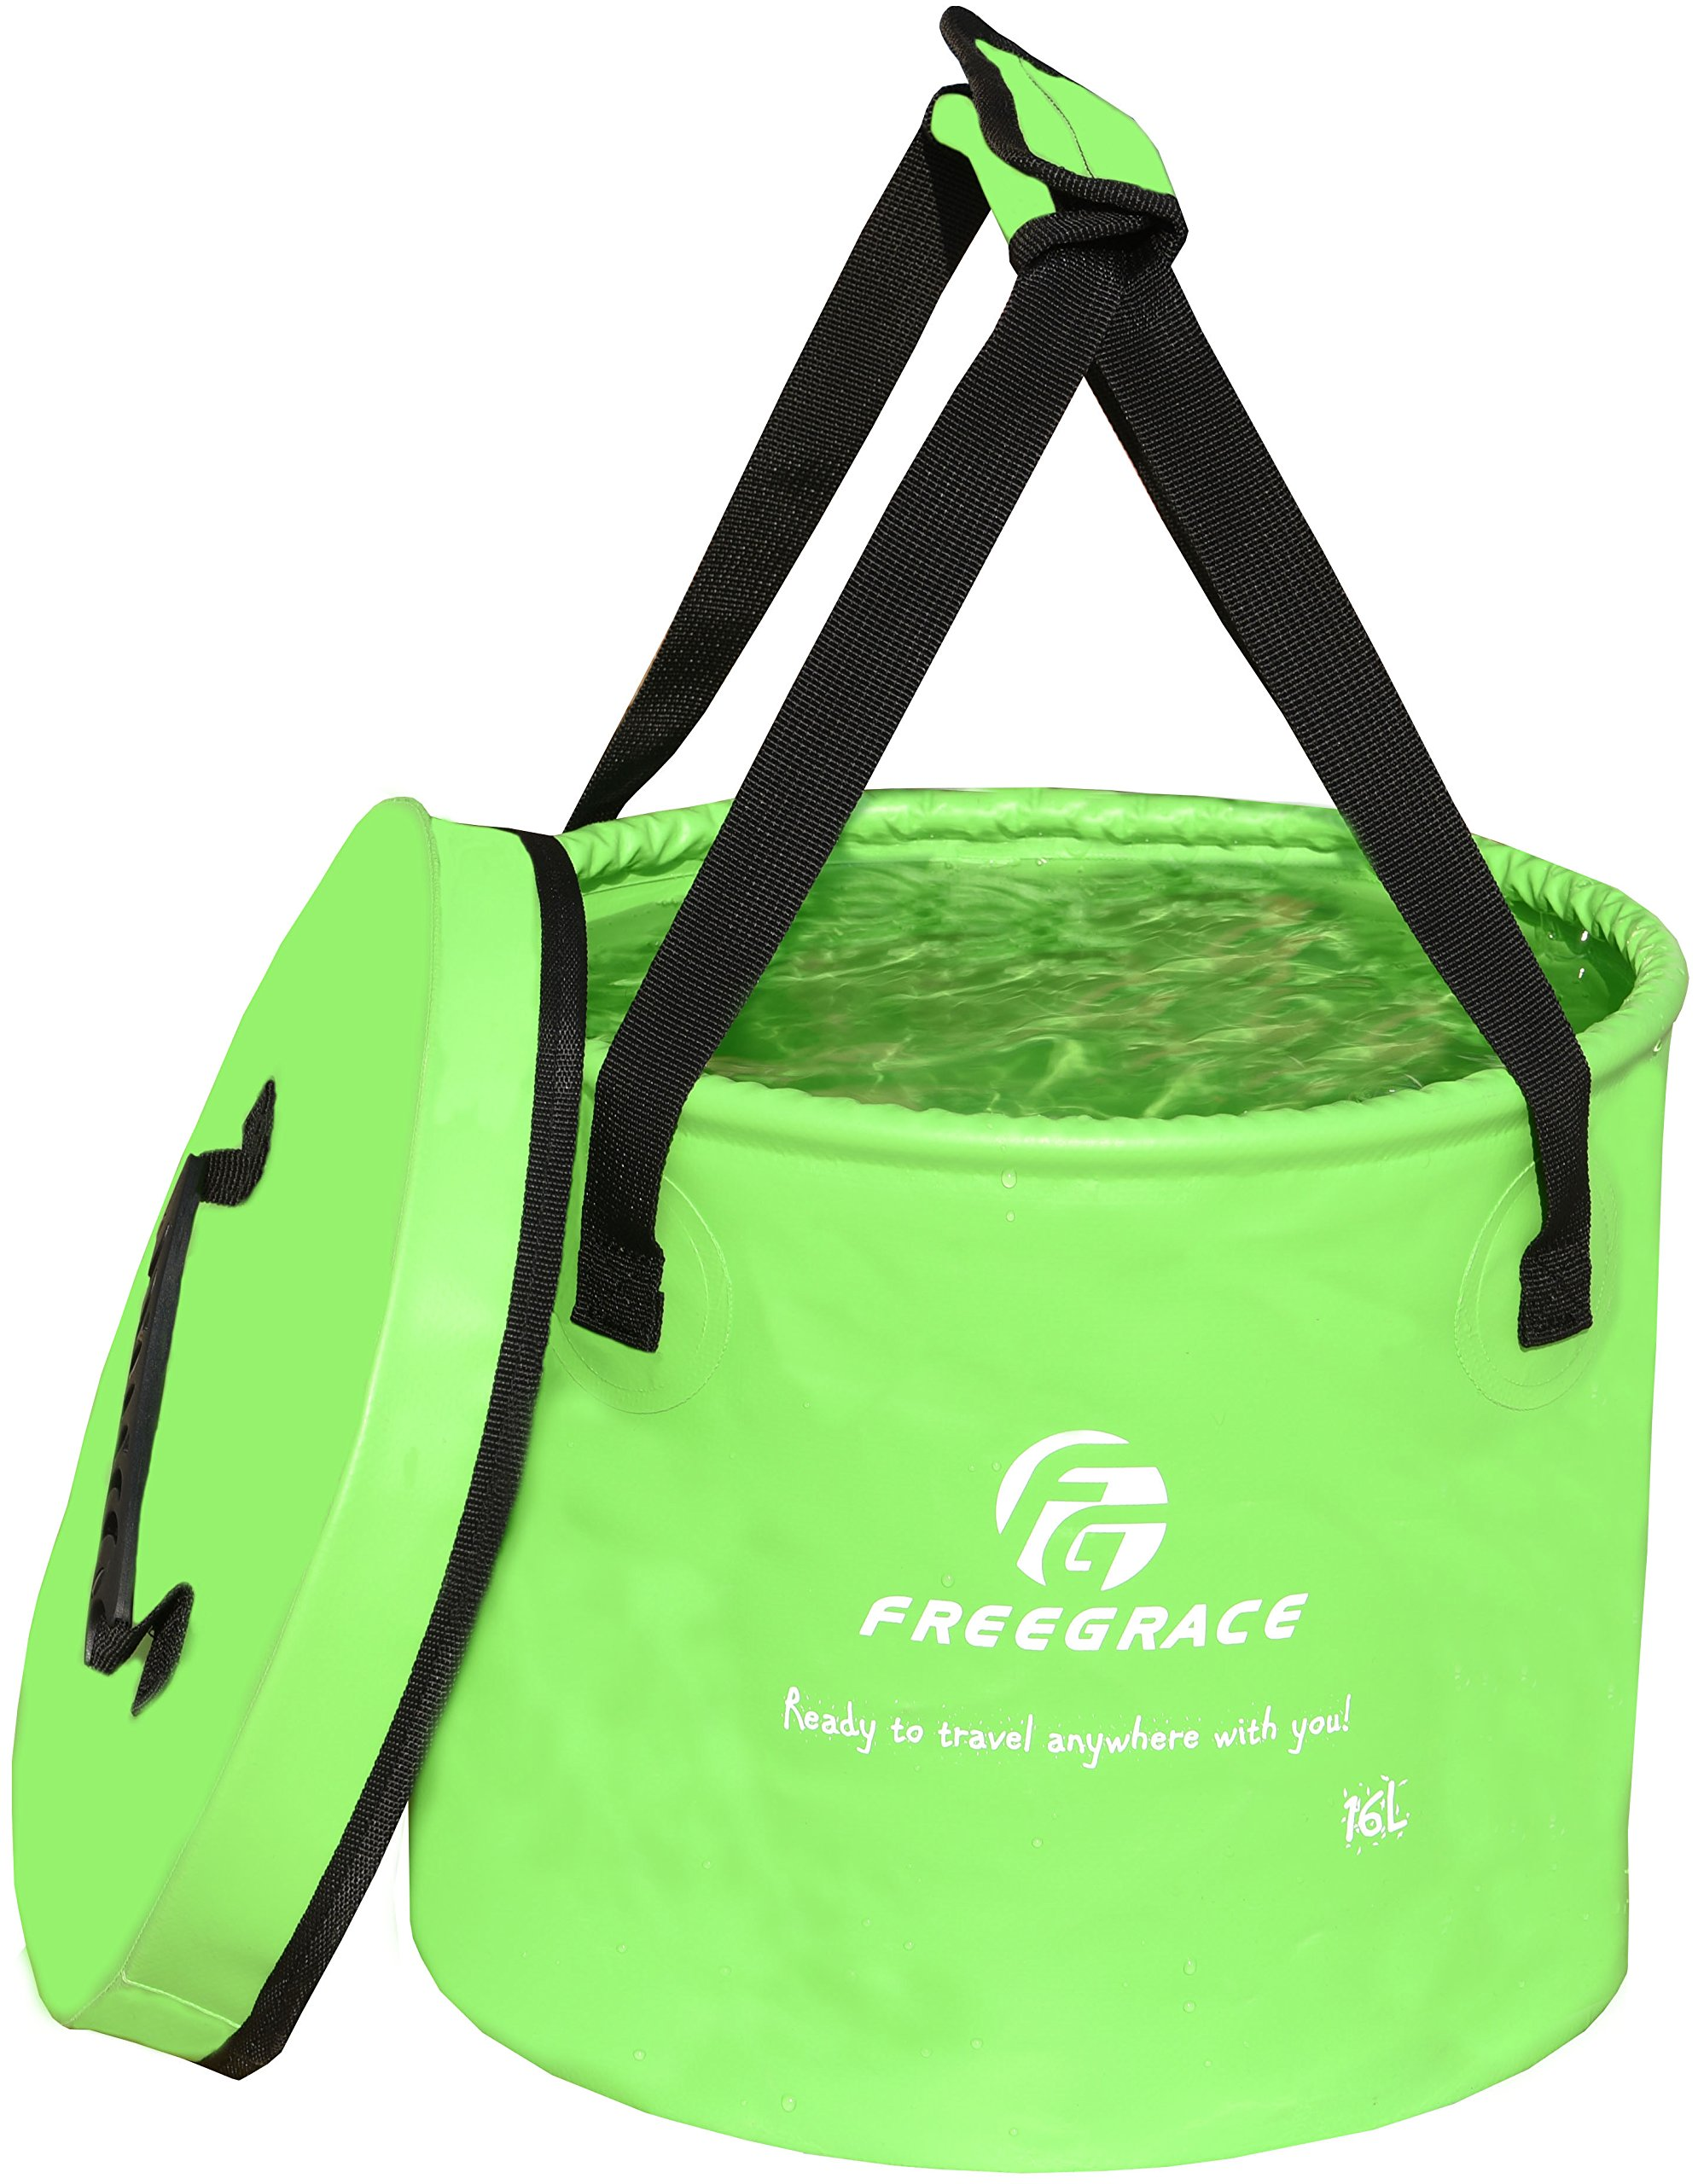 Freegrace Premium Compact Collapsible Bucket Portable Folding Water Container - Lightweight & Durable - Includes Mesh Pocket - Available in Multiple Colors & Sizes (Green, 10L (Lid)) by Freegrace